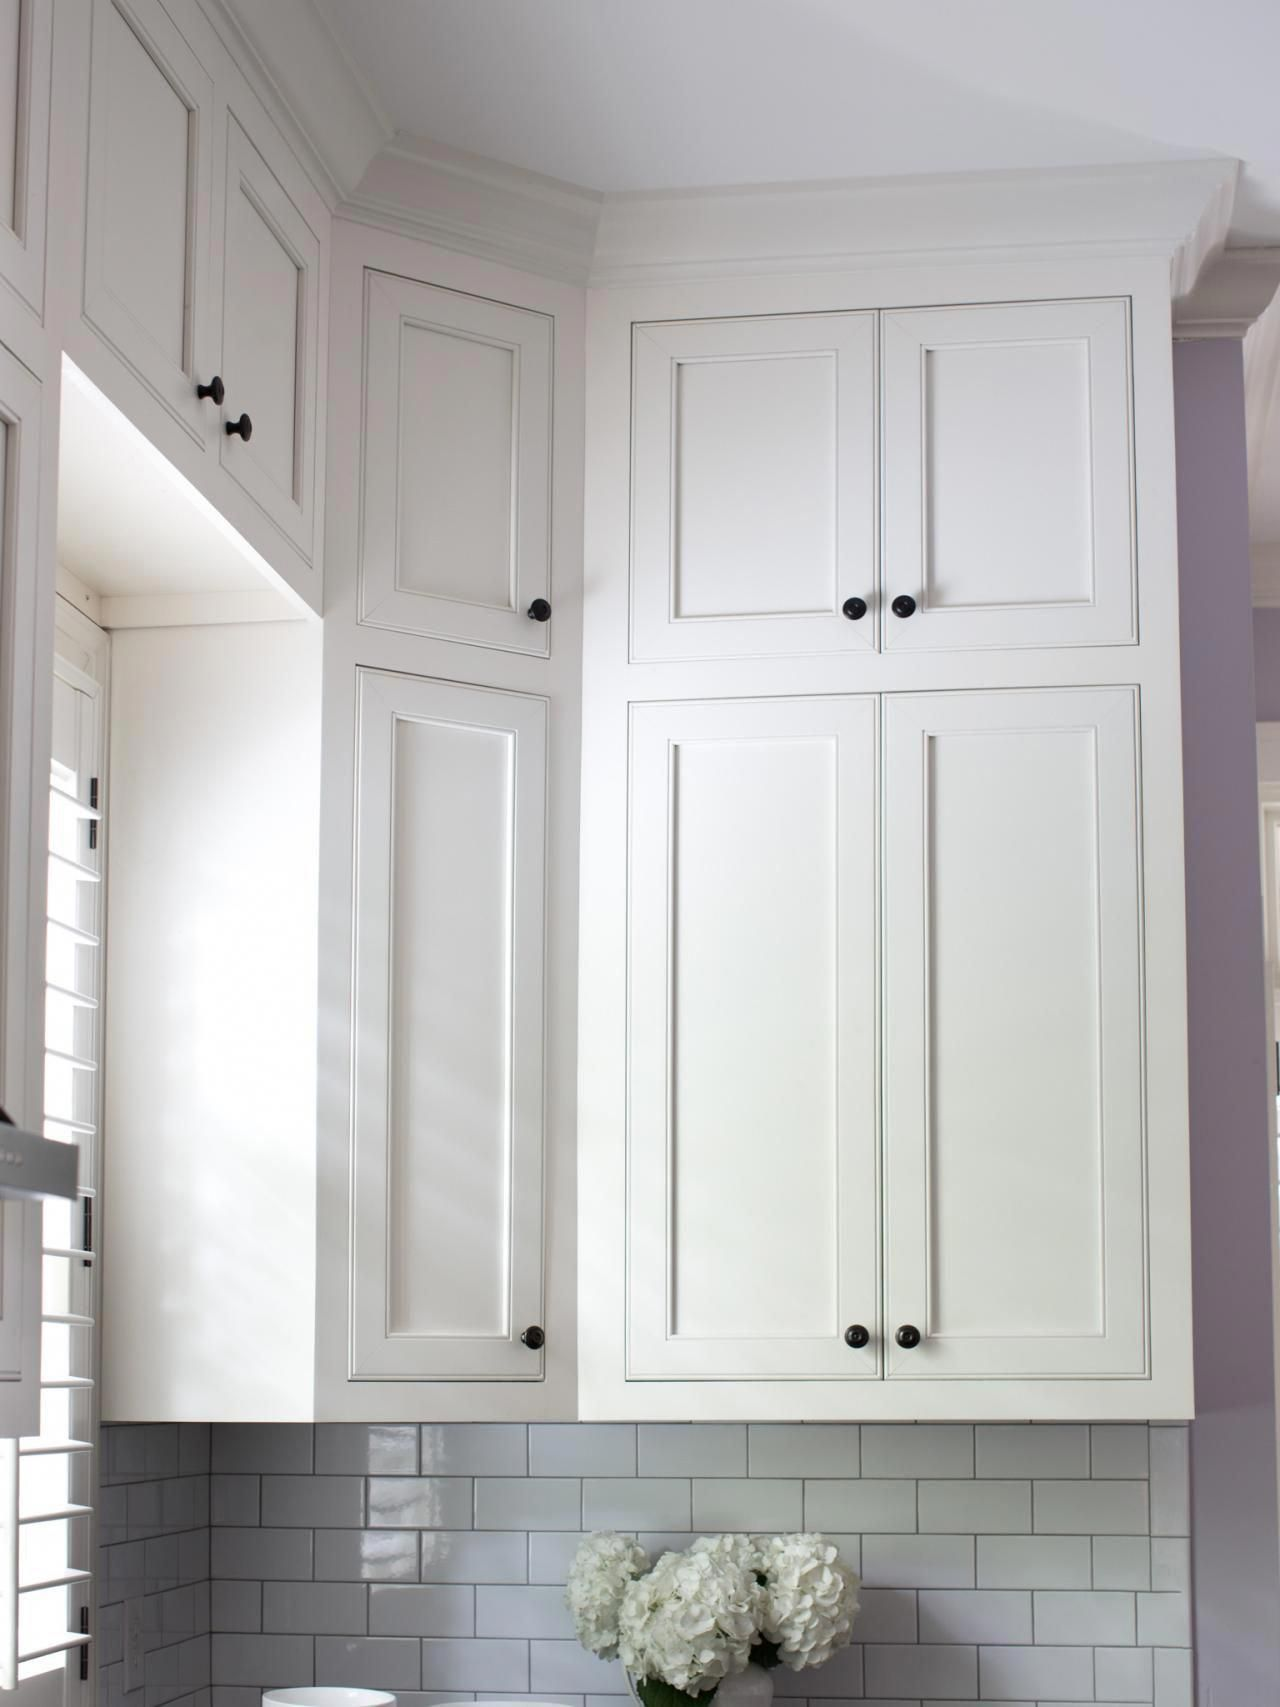 Finishing Touches To Make Or Break A Remodel Break Finishing Remodel Touches In 2020 Kitchen Cabinets To Ceiling White Kitchen Cupboards Kitchen Cabinet Design